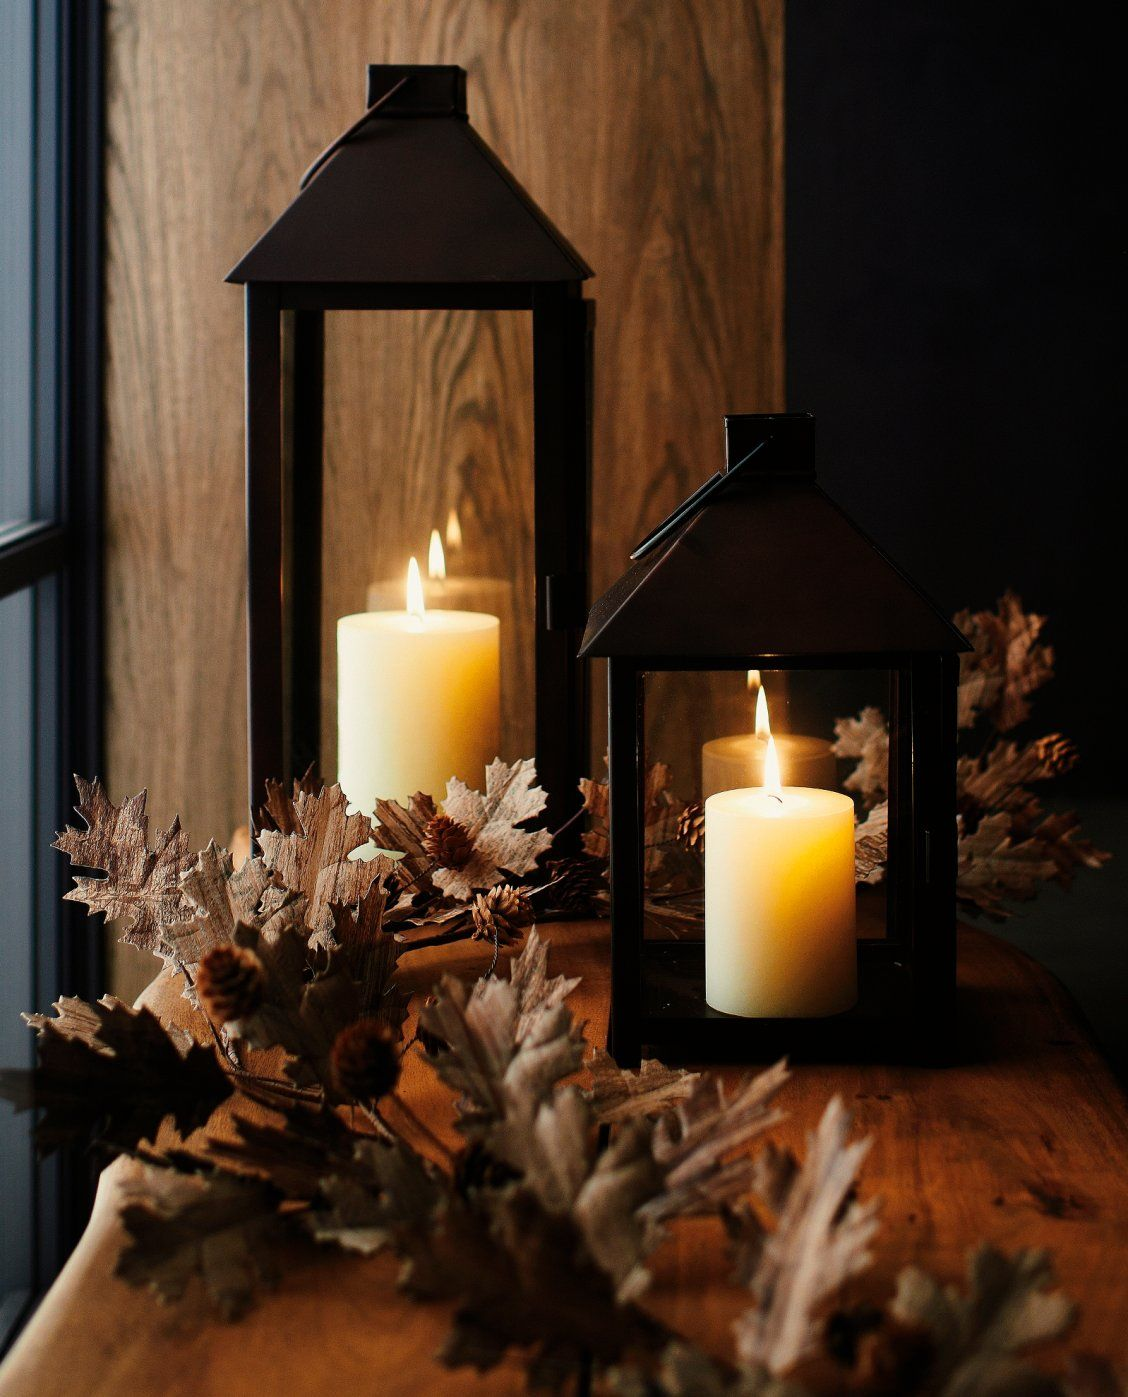 Candles for Fireplace Display Beautiful Our Fall Mantra Cozy Autumn Inspiration